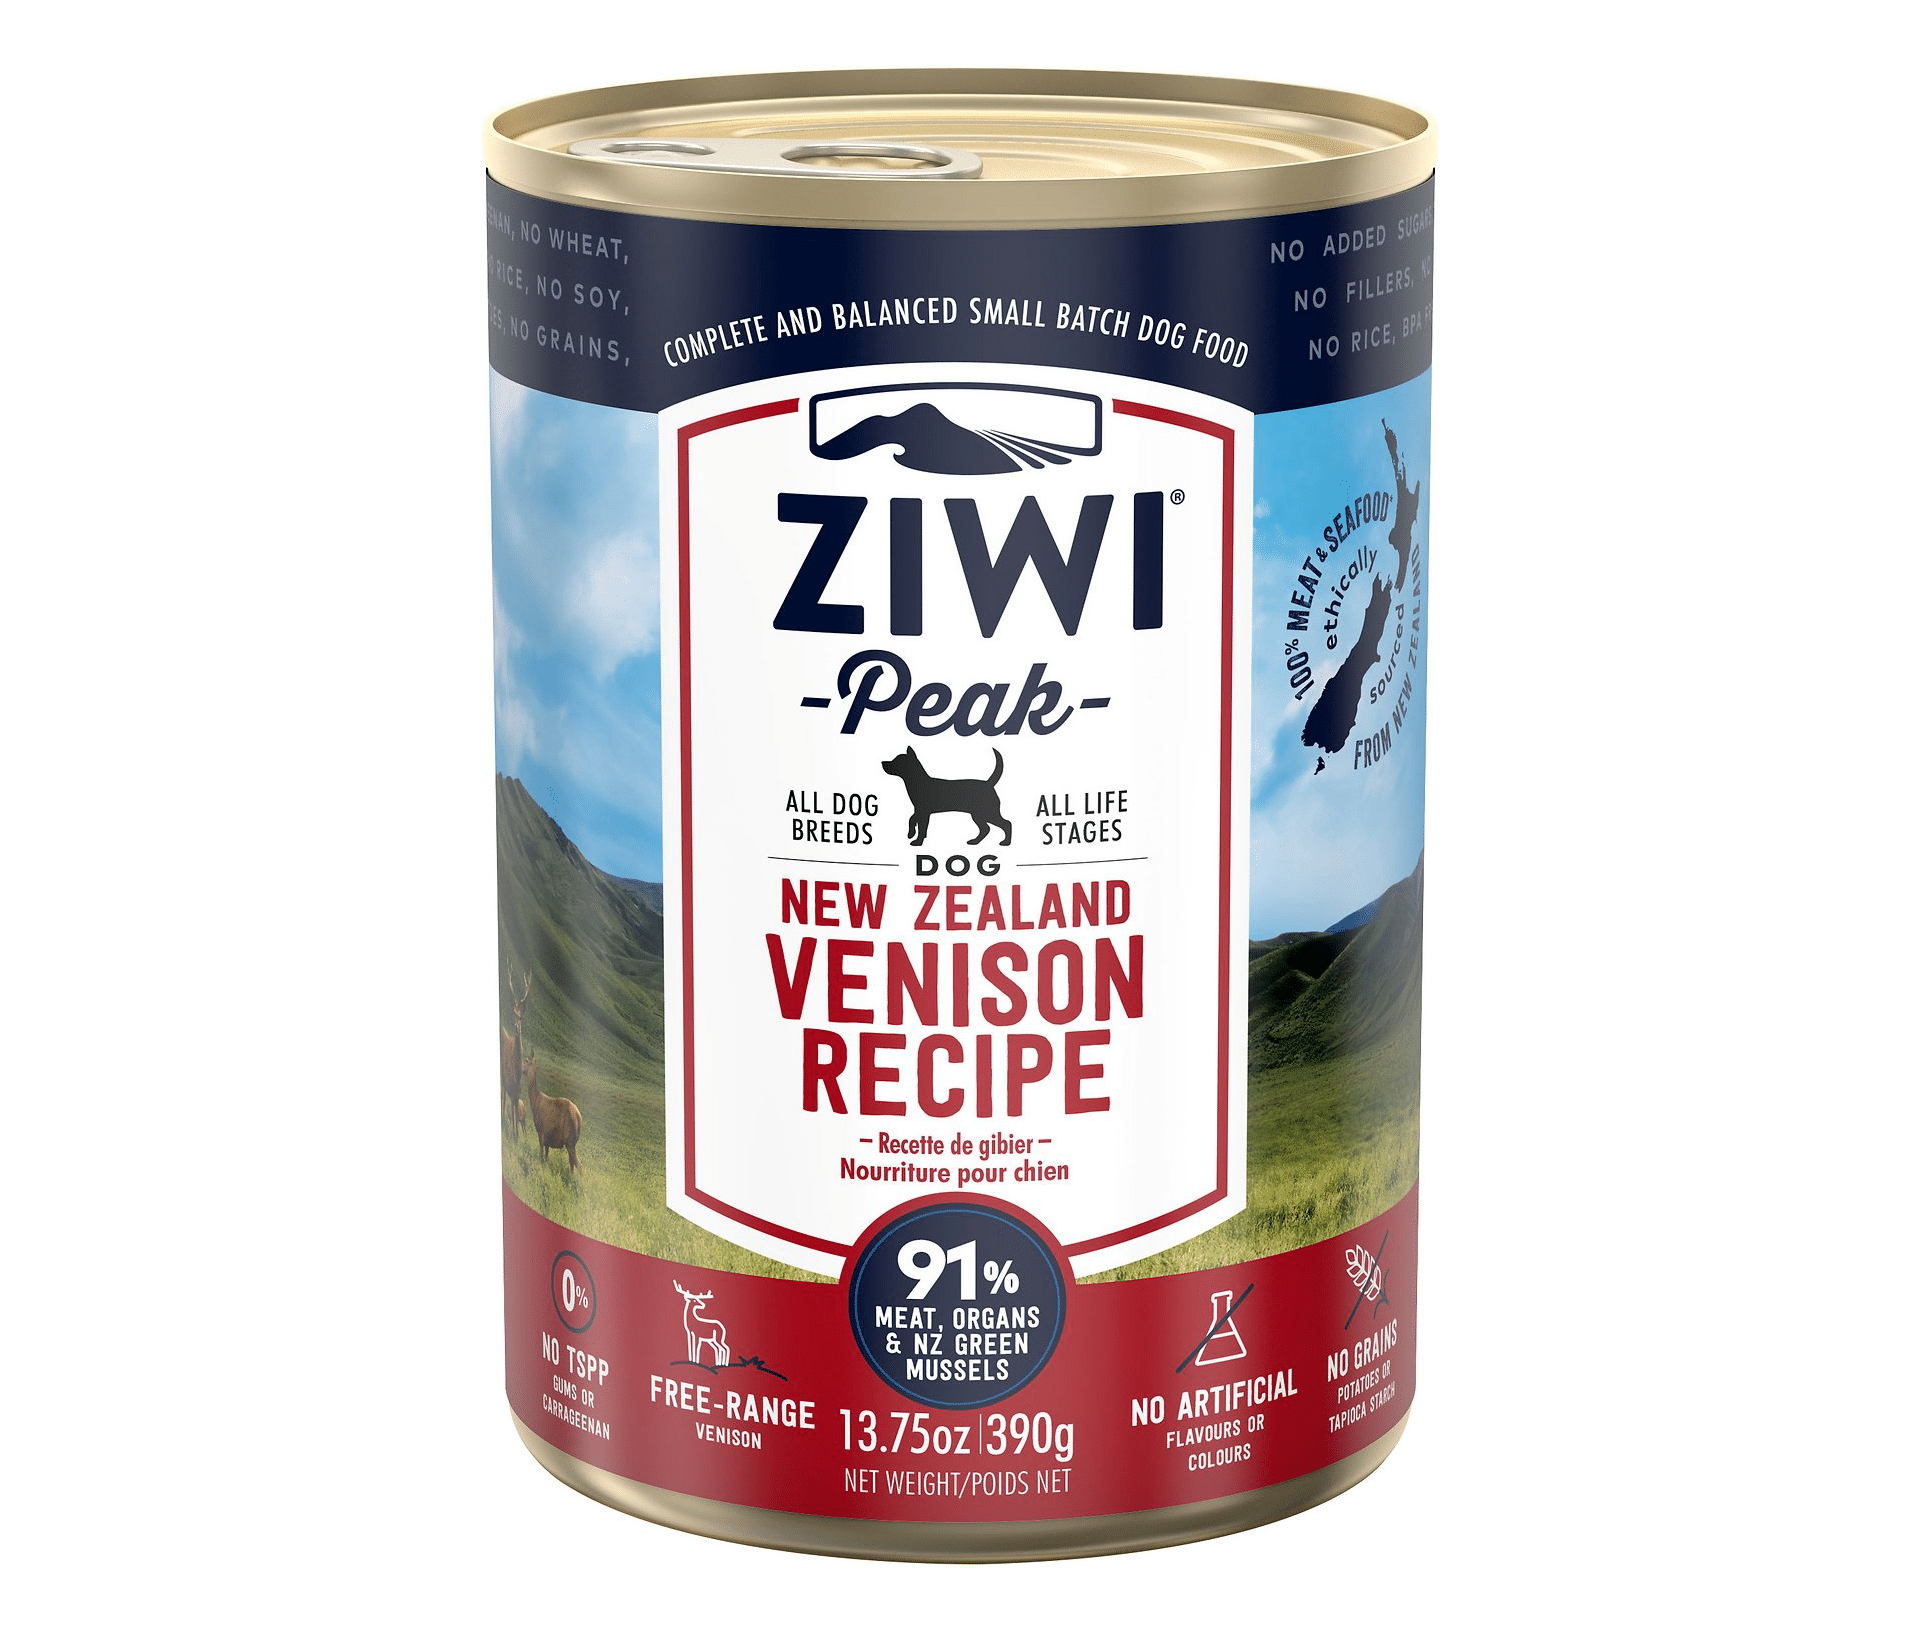 Ziwi Peak Venison Recipe Canned